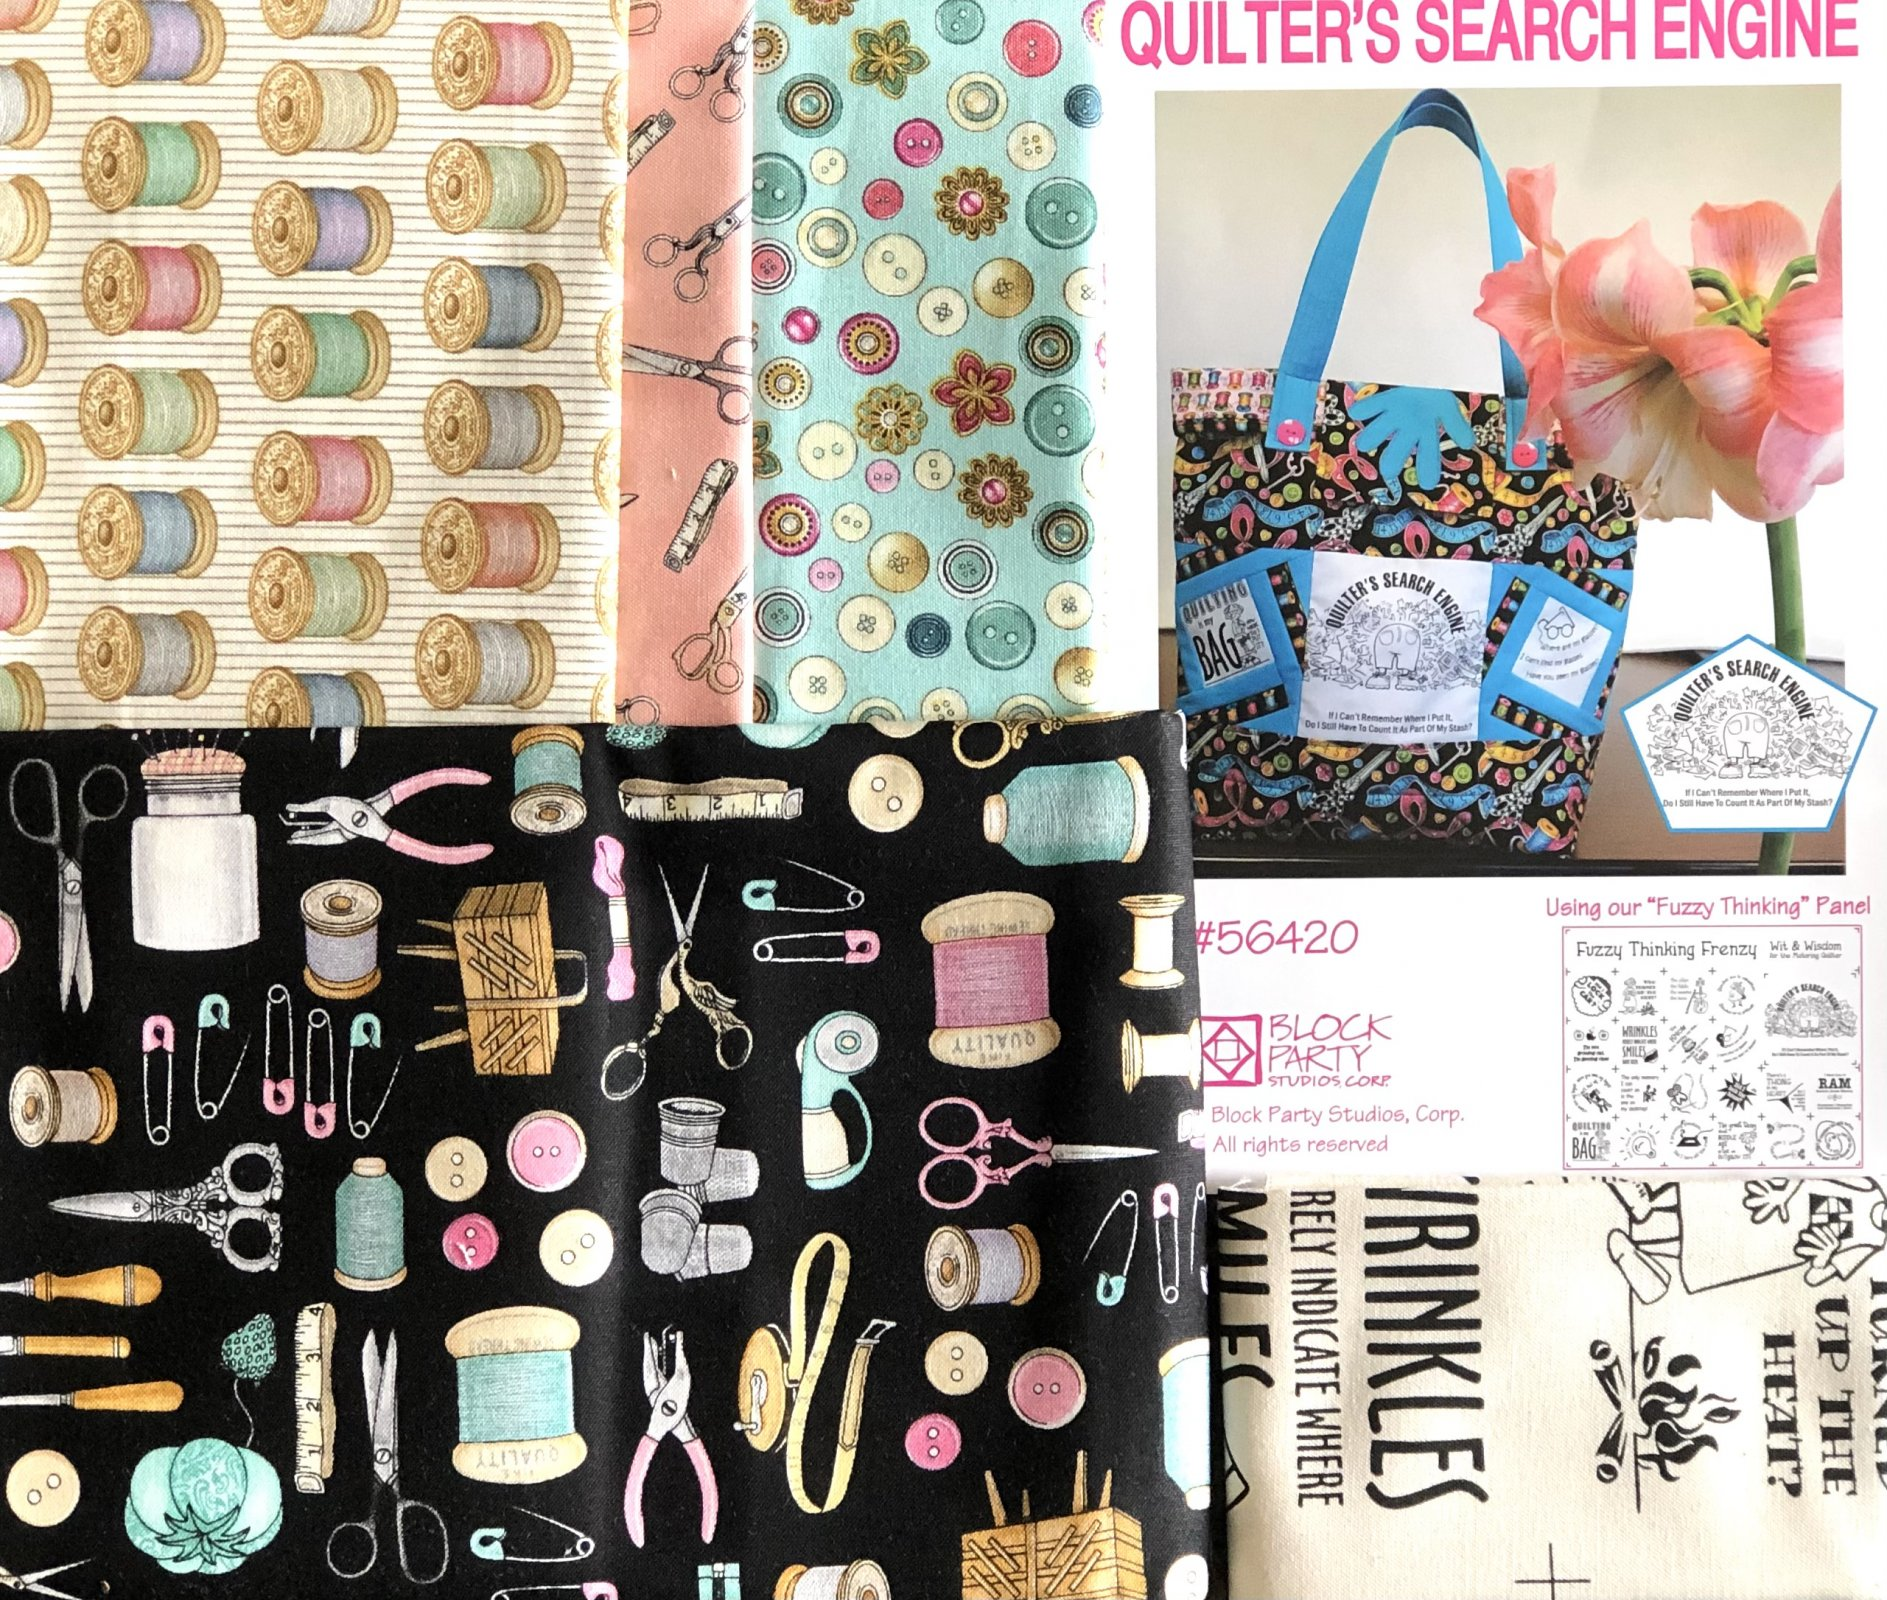 Quilter's Search Engine Tote Bag Kit